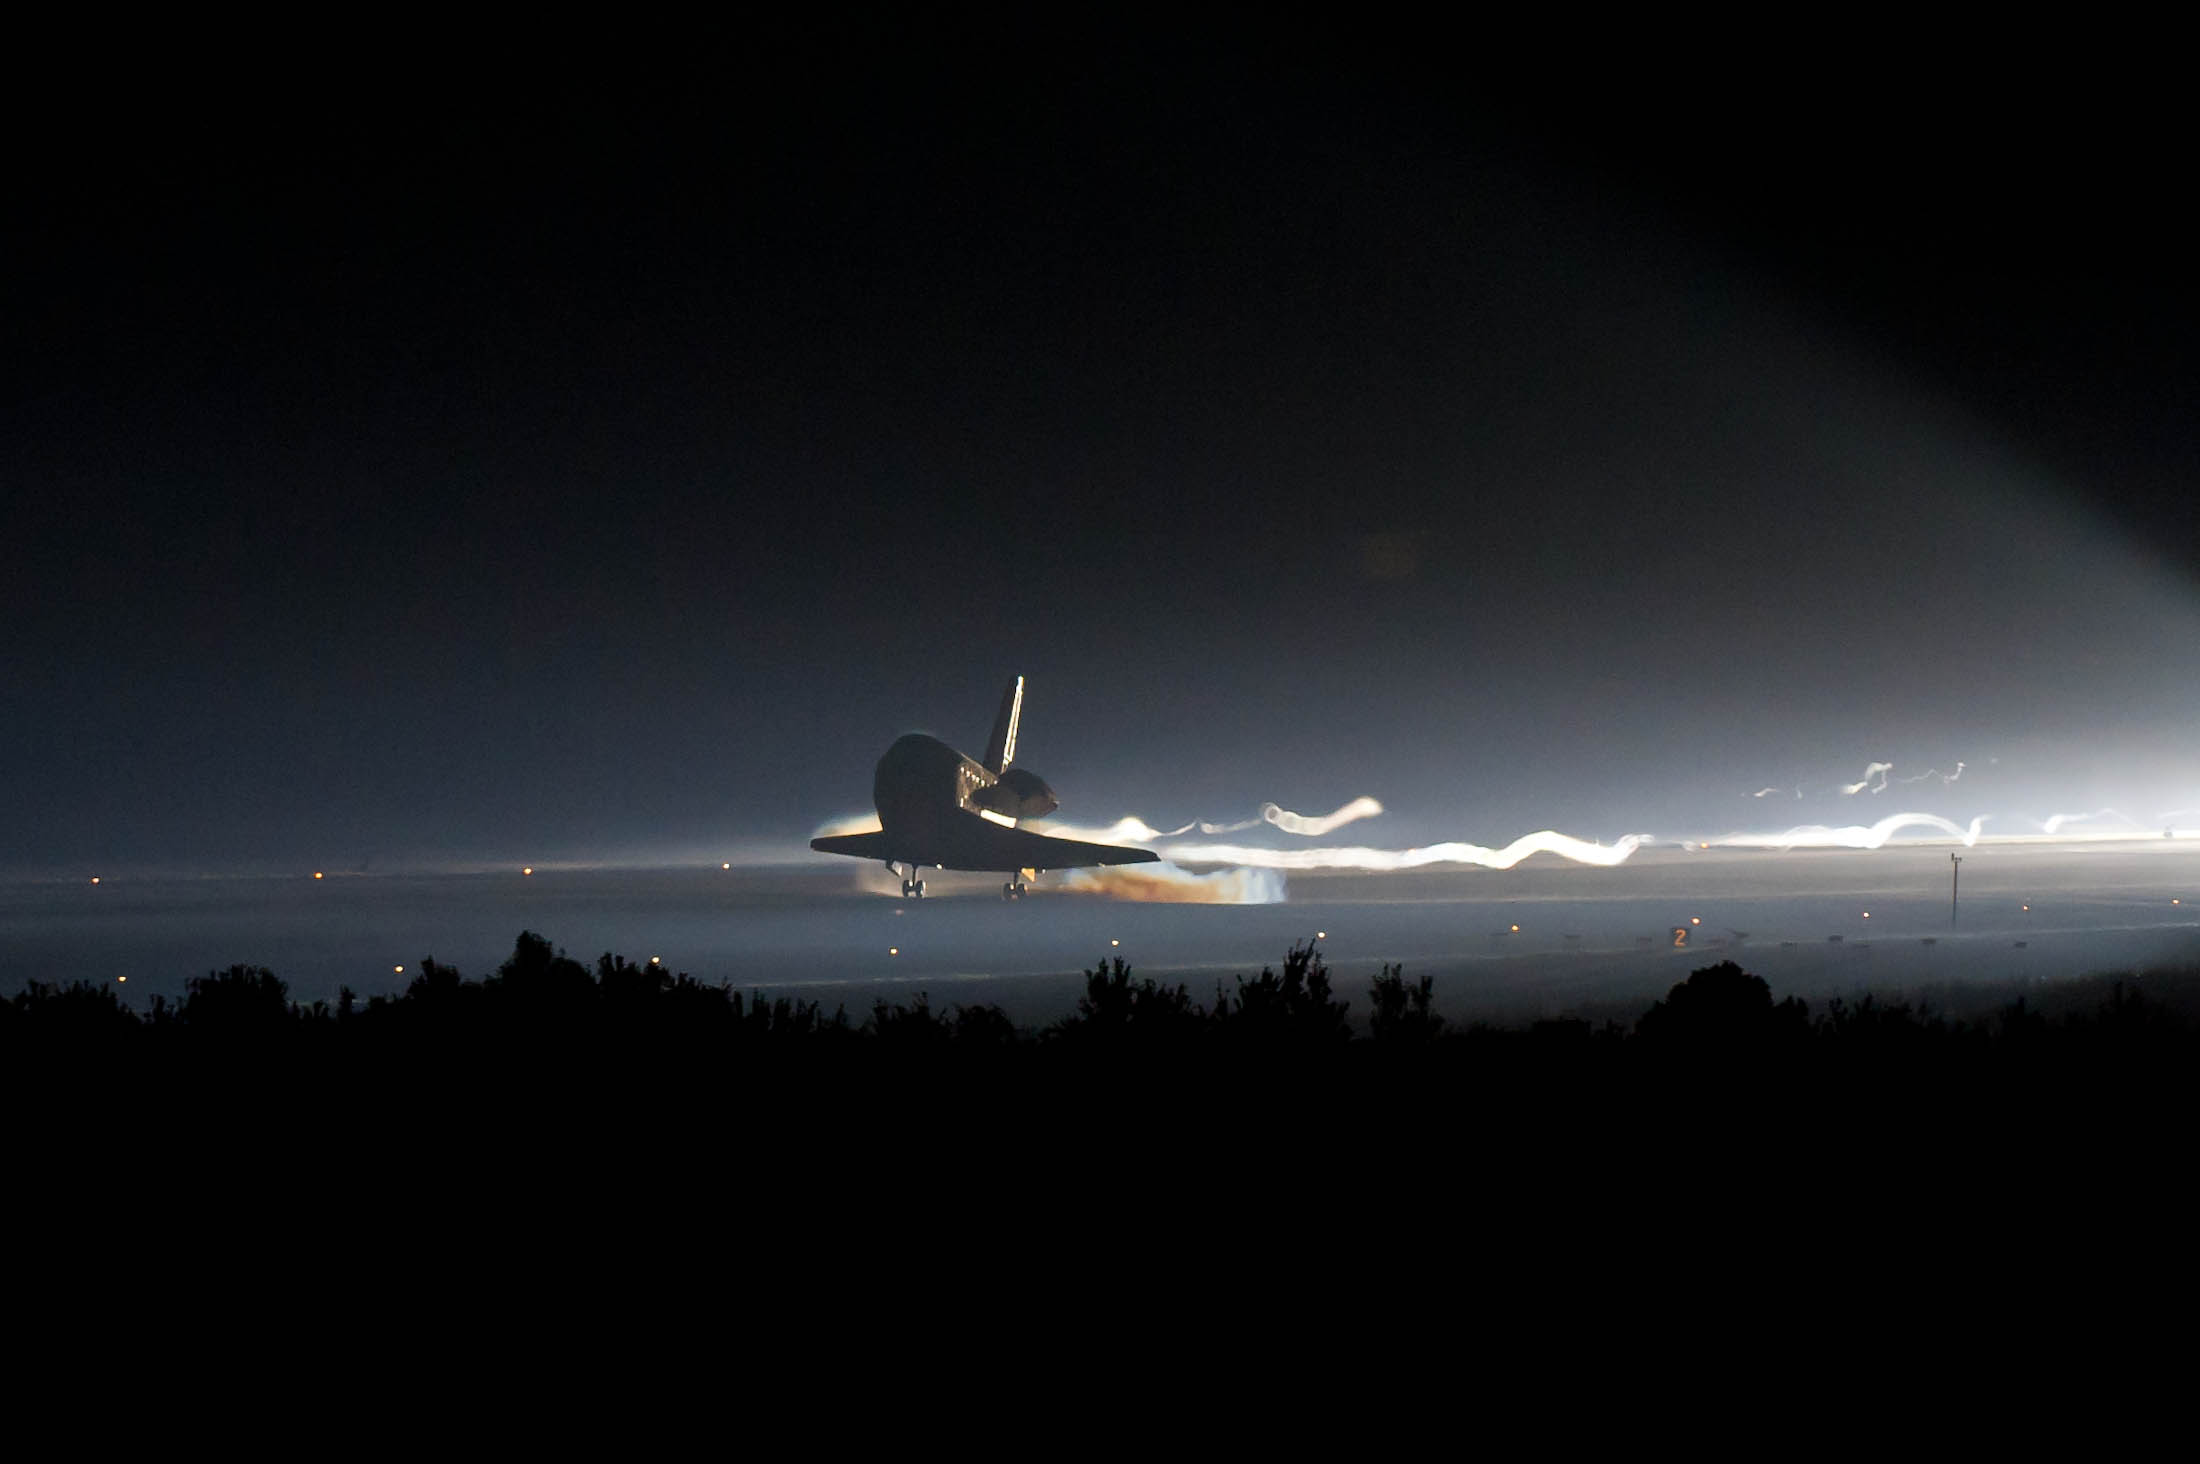 Space Shuttle Makes Last Landing in Bittersweet Finale